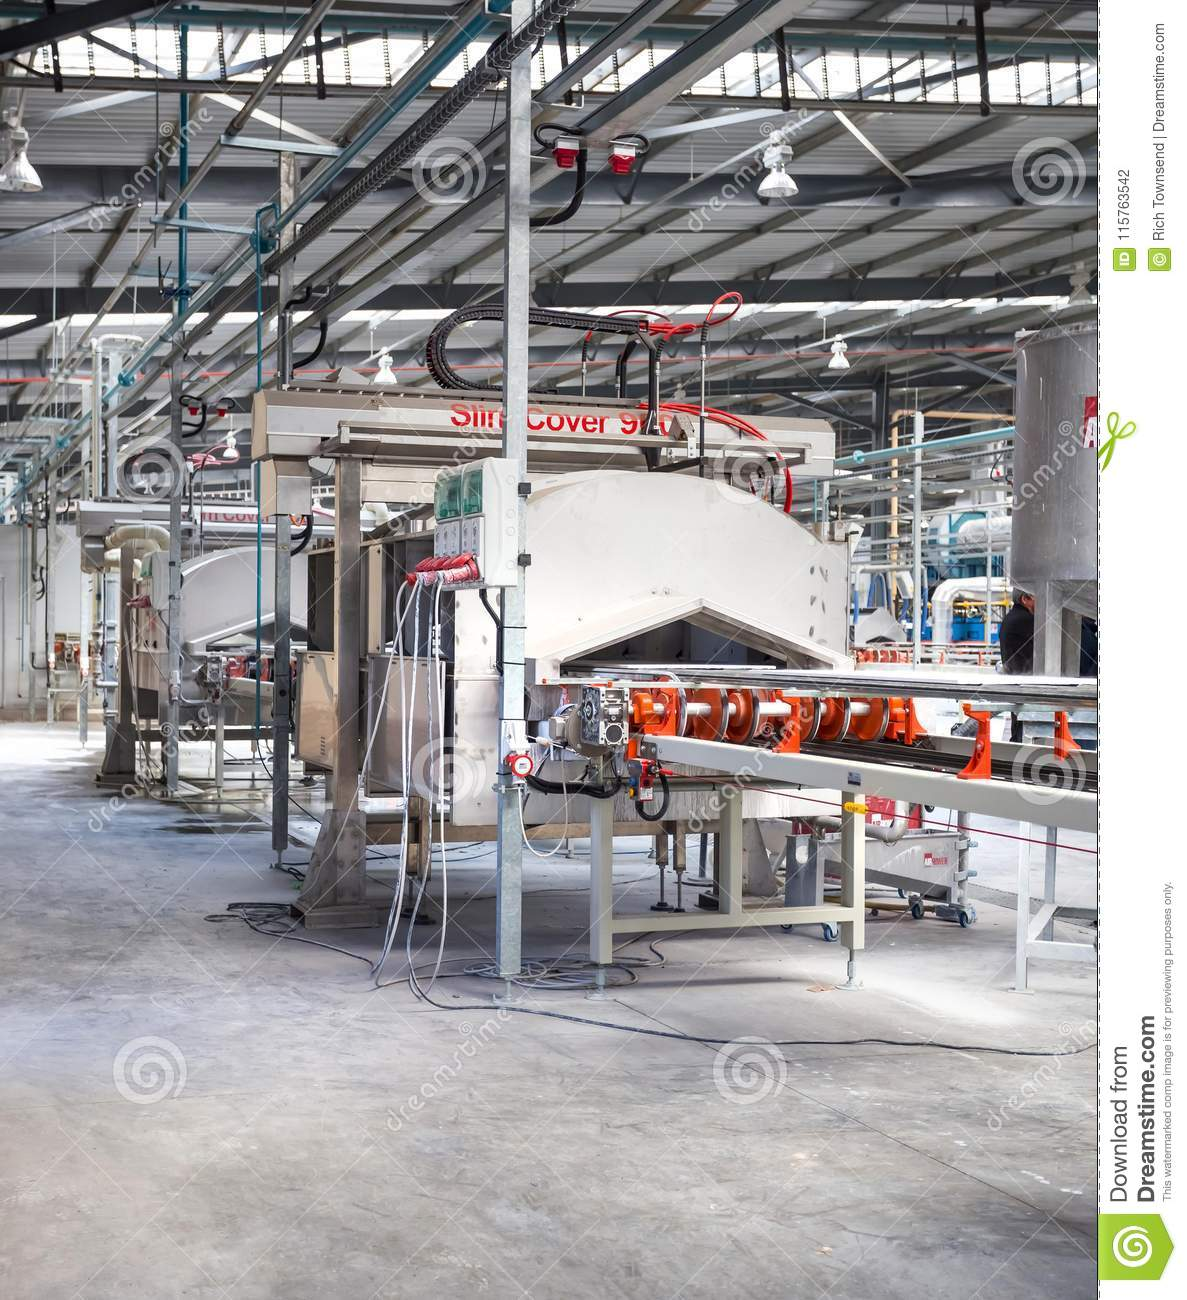 Ceramic Tile Manufacturing Plant With A Conveyer Belt Editorial